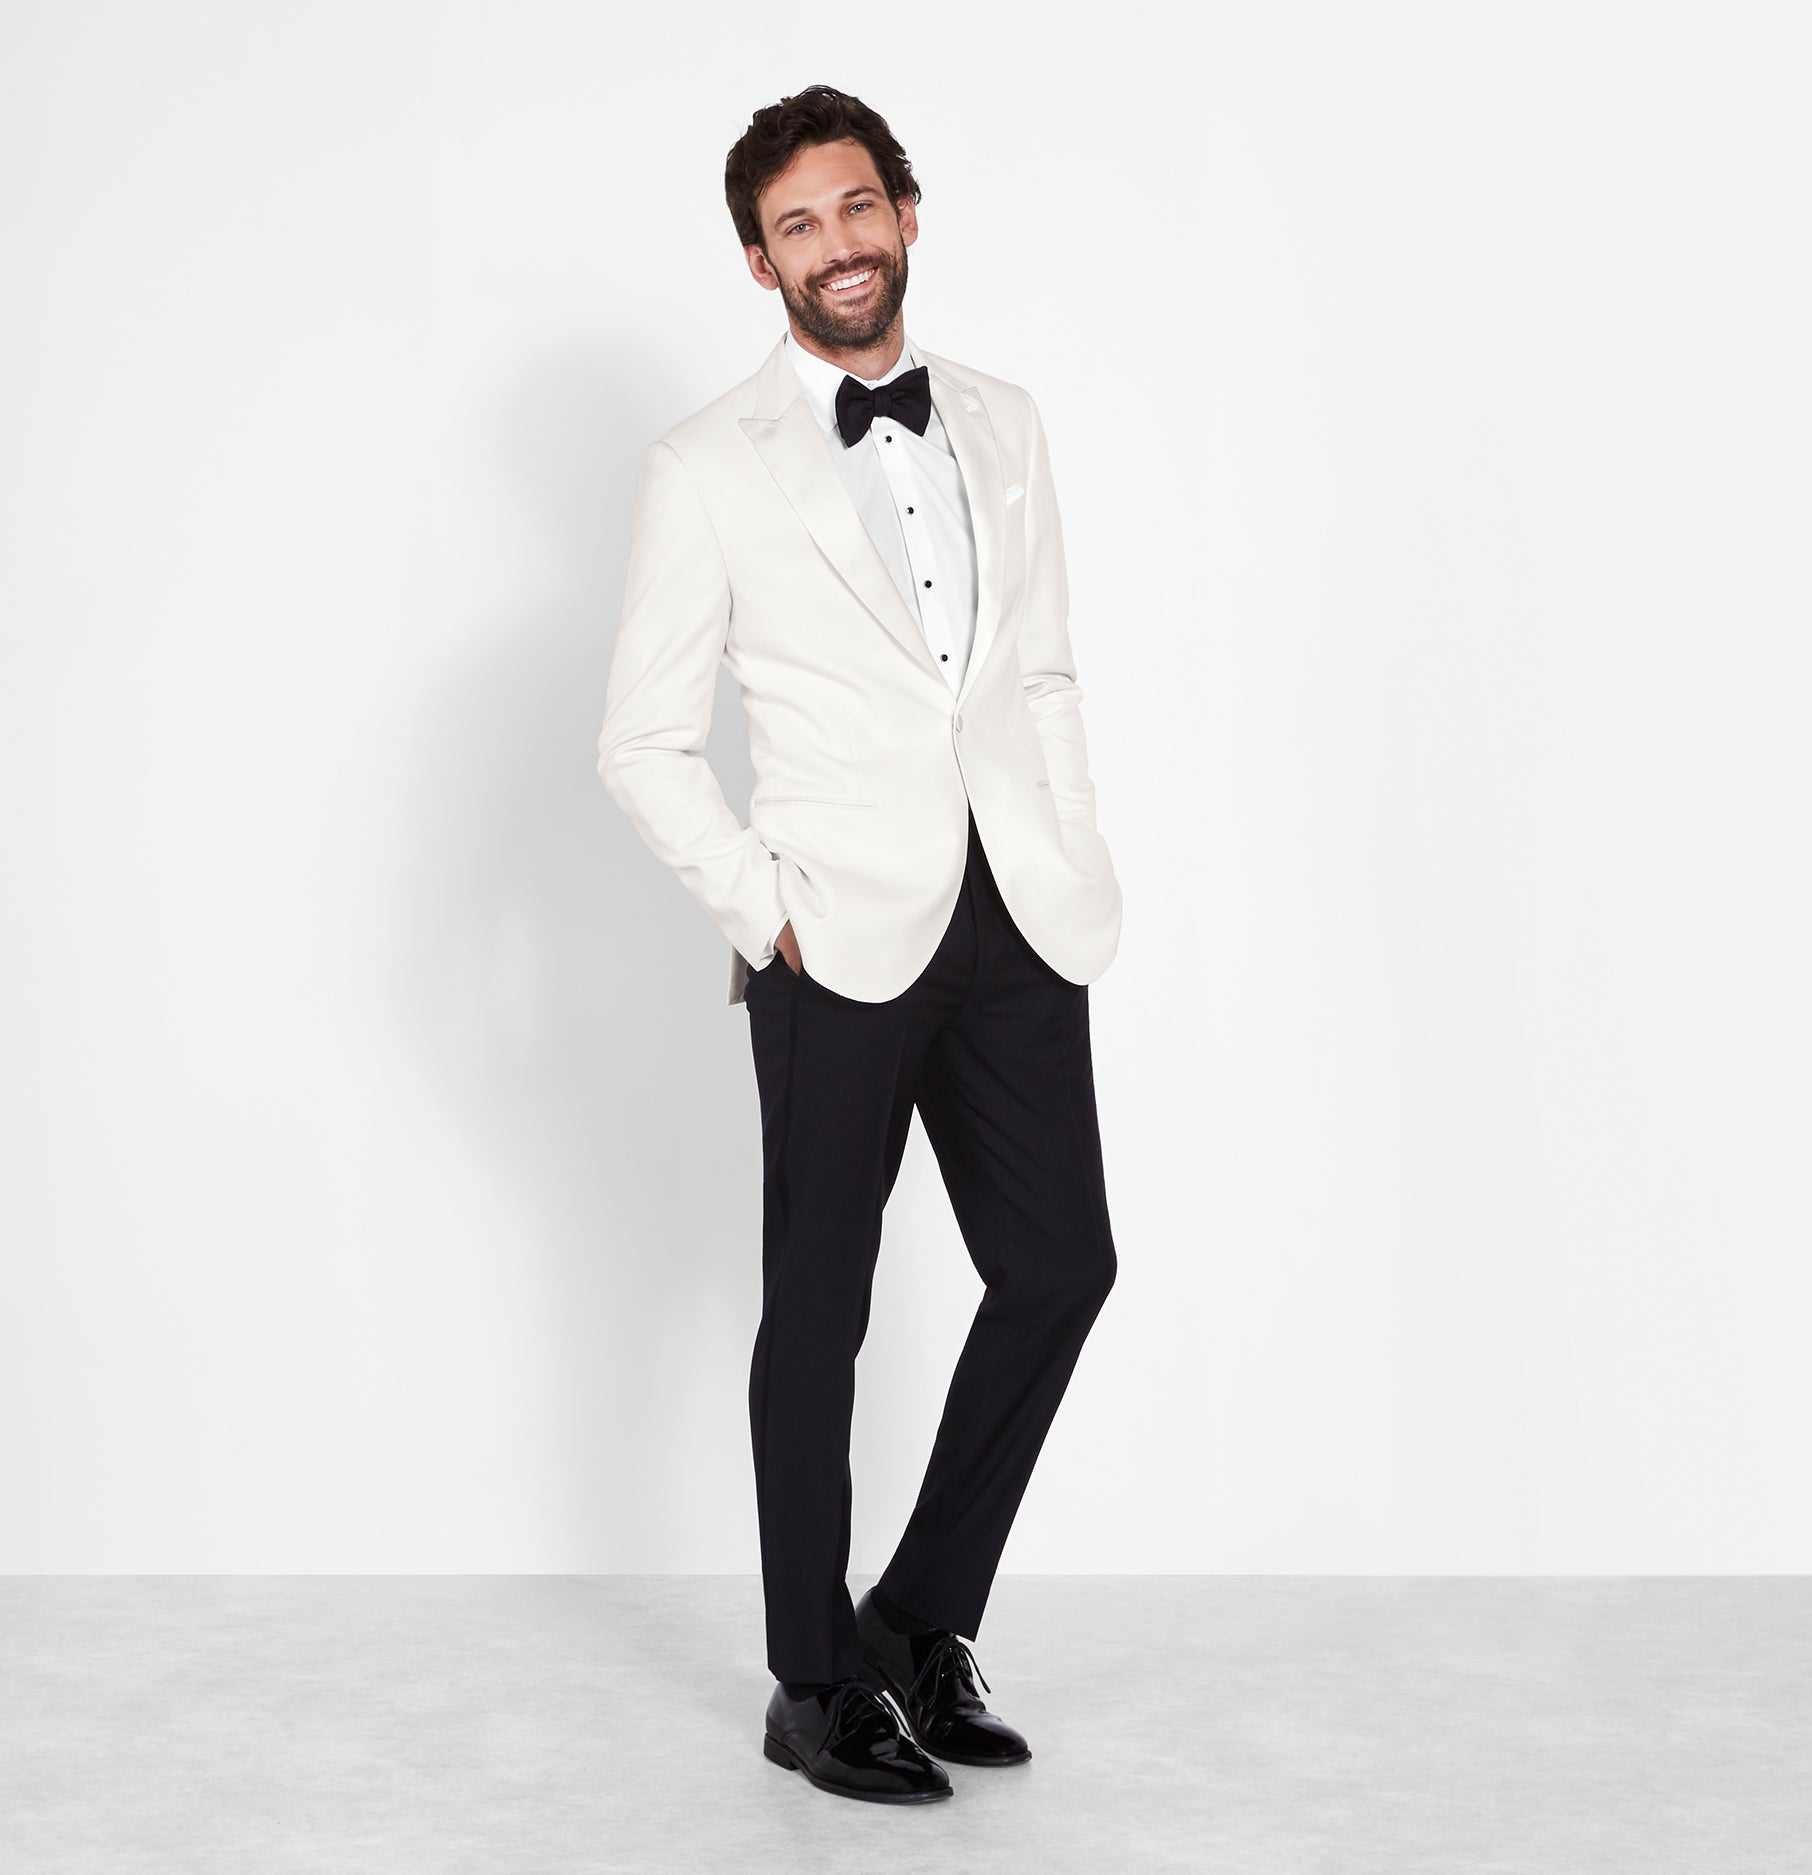 White Dinner Jacket Tuxedo | The Black Tux